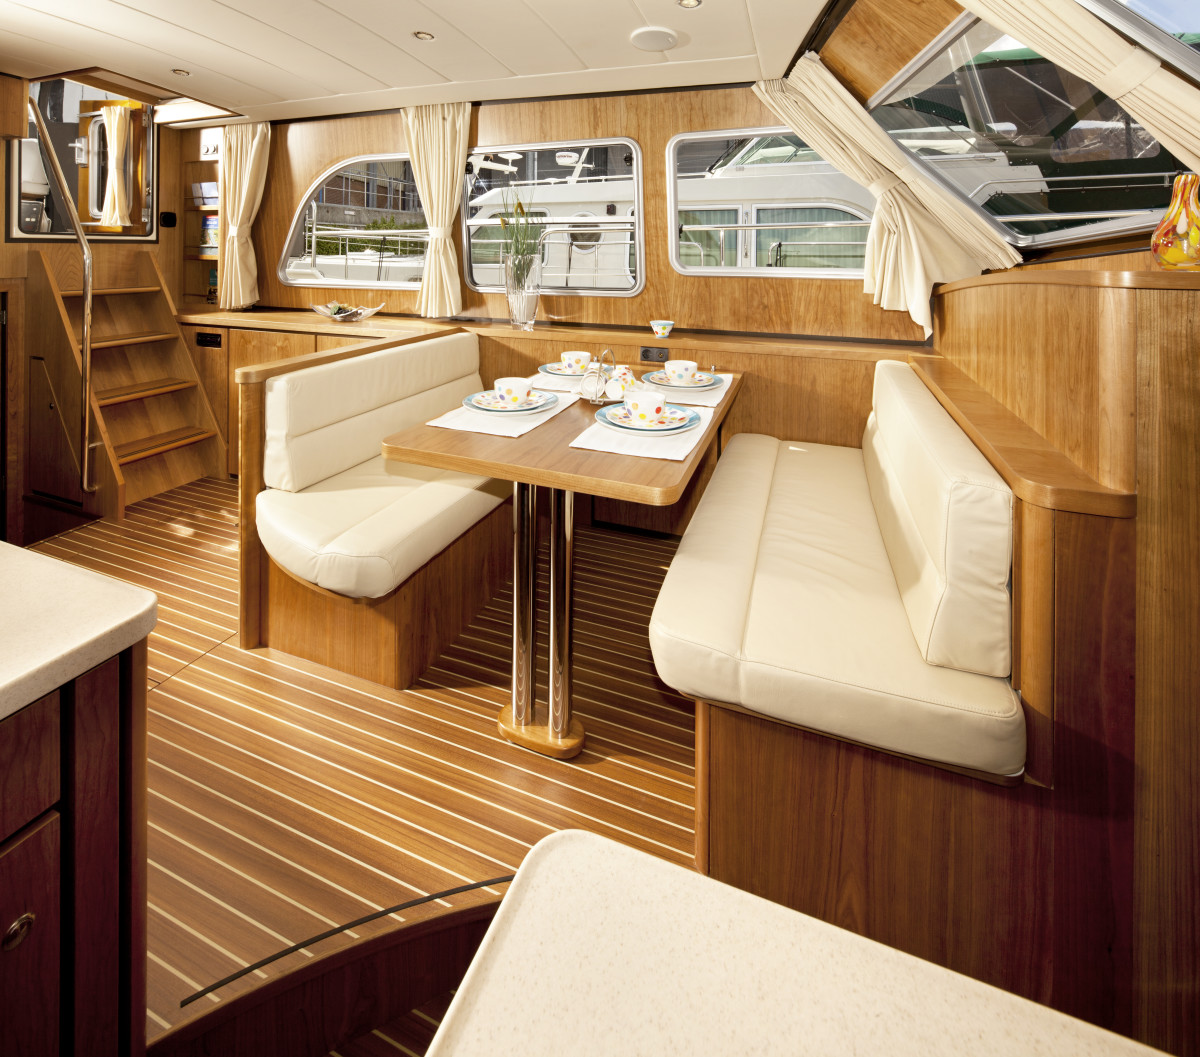 Linssen is dedicated to building high-quality, no frills yachts. The interiors are simple, clean, and functional, as shown here, but constructed to the highest standards.